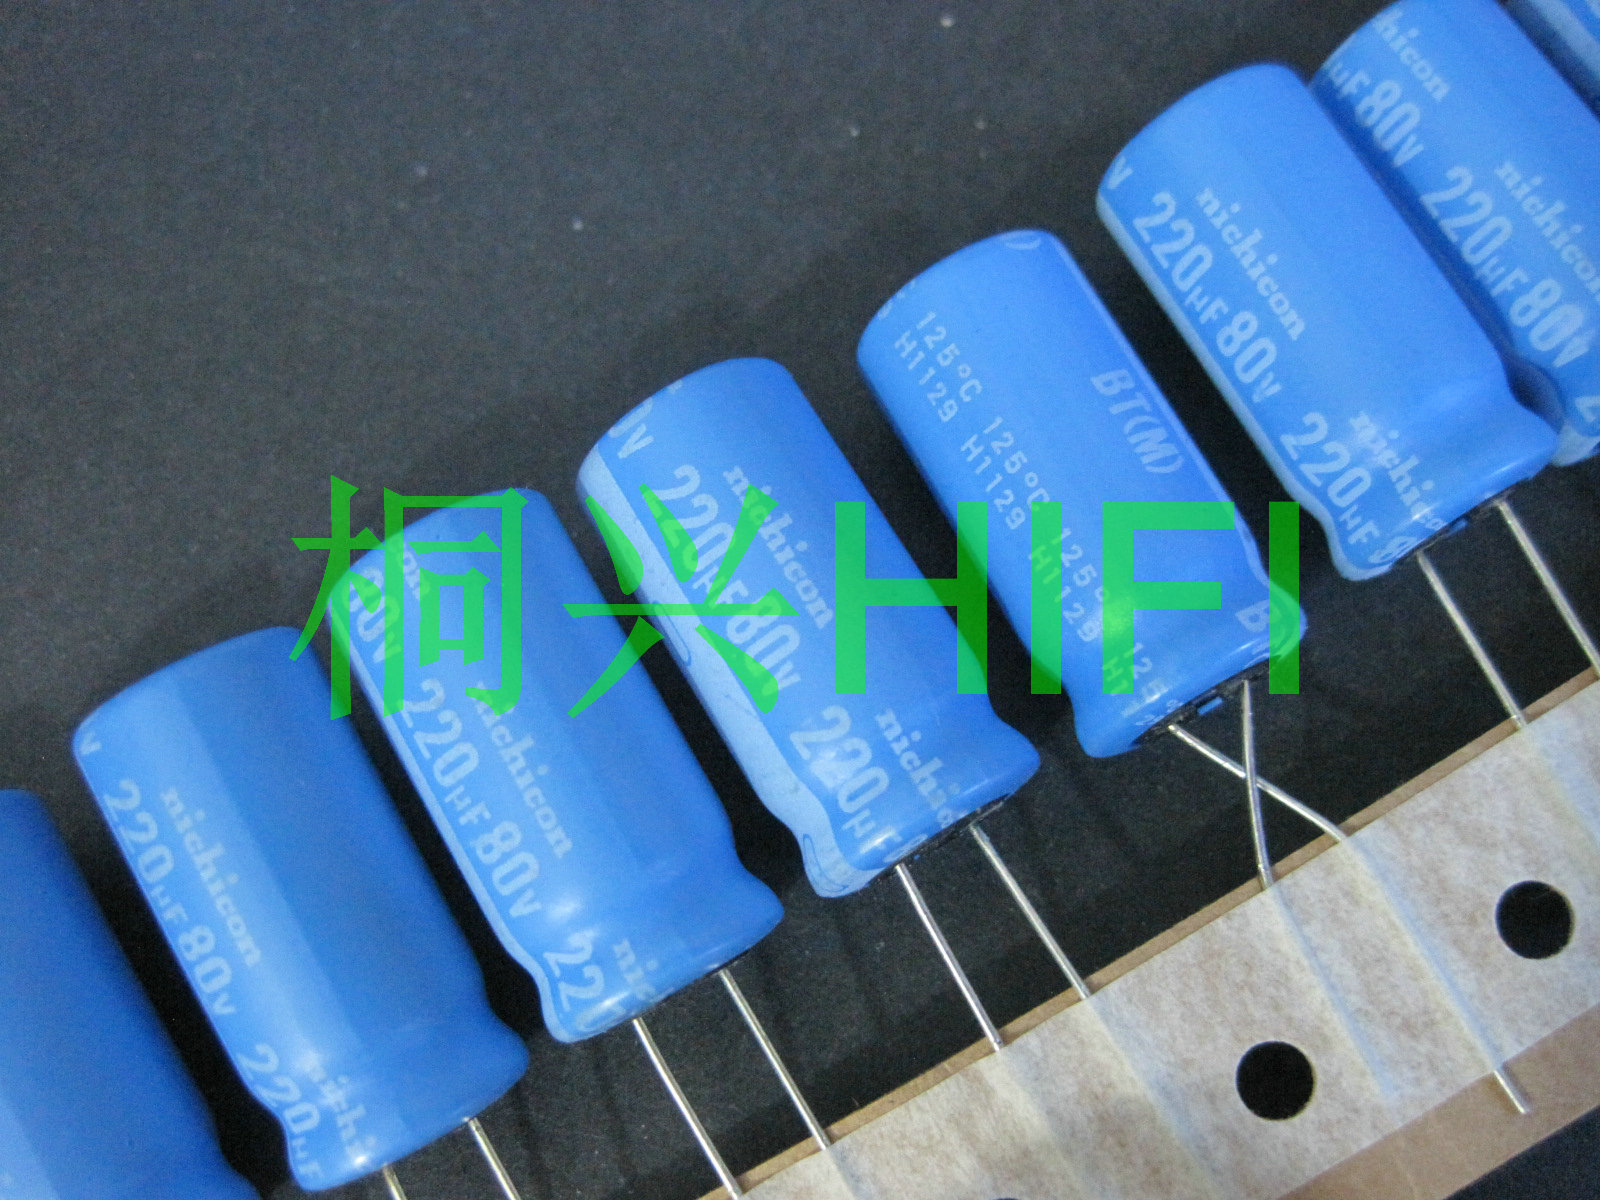 20pcs NICHICON BT 80V220UF 12.5X25MM Electrolytic Capacitor Bt 125 Degrees 220uF/80v Military Industrial Capacitor 220UF 80V